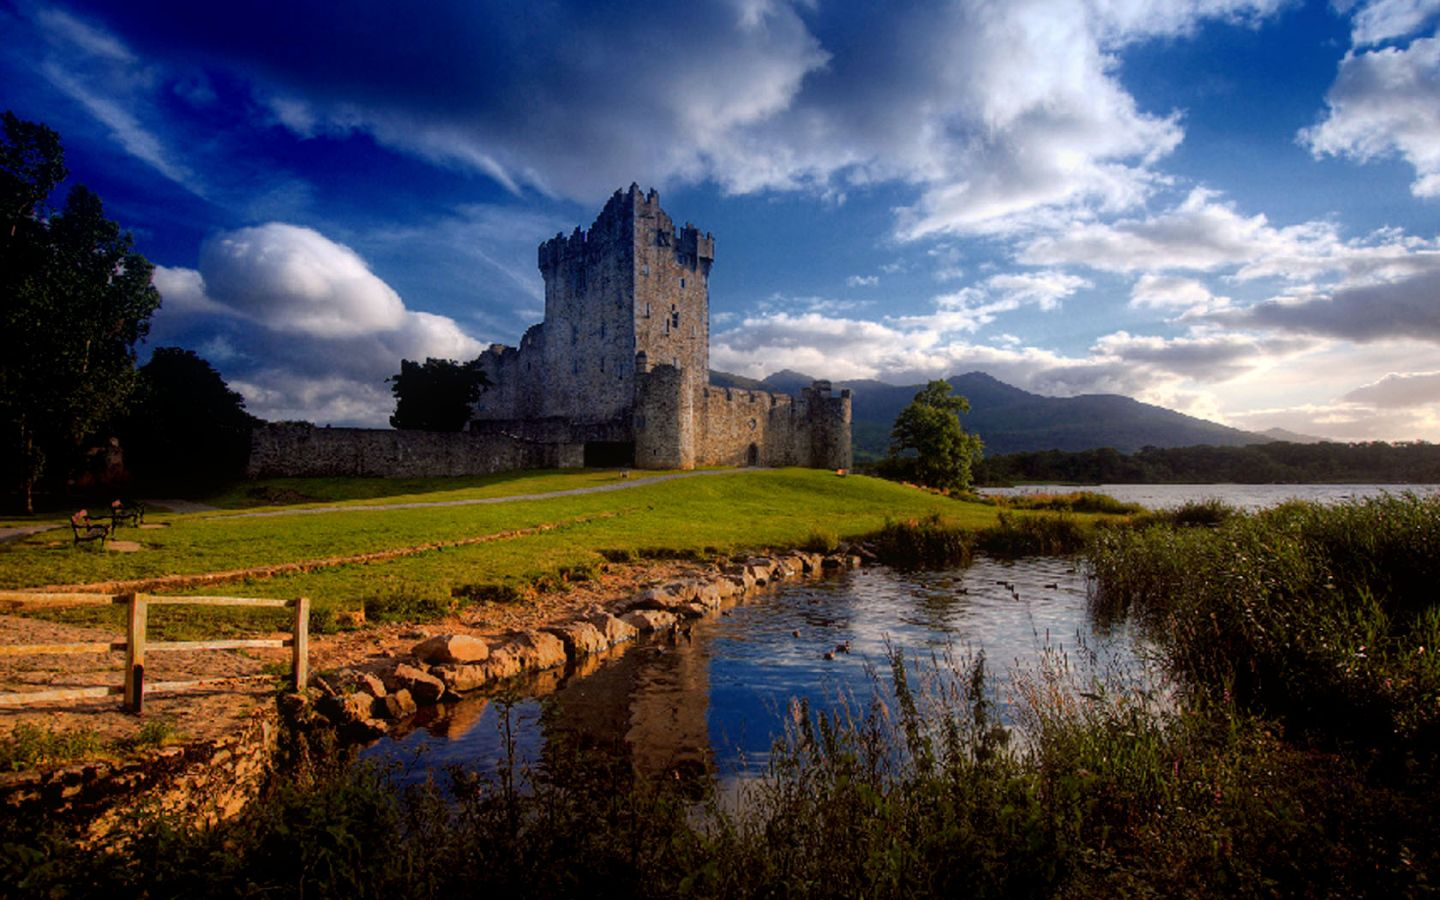 50] Ireland Pictures Wallpaper on WallpaperSafari 1440x900